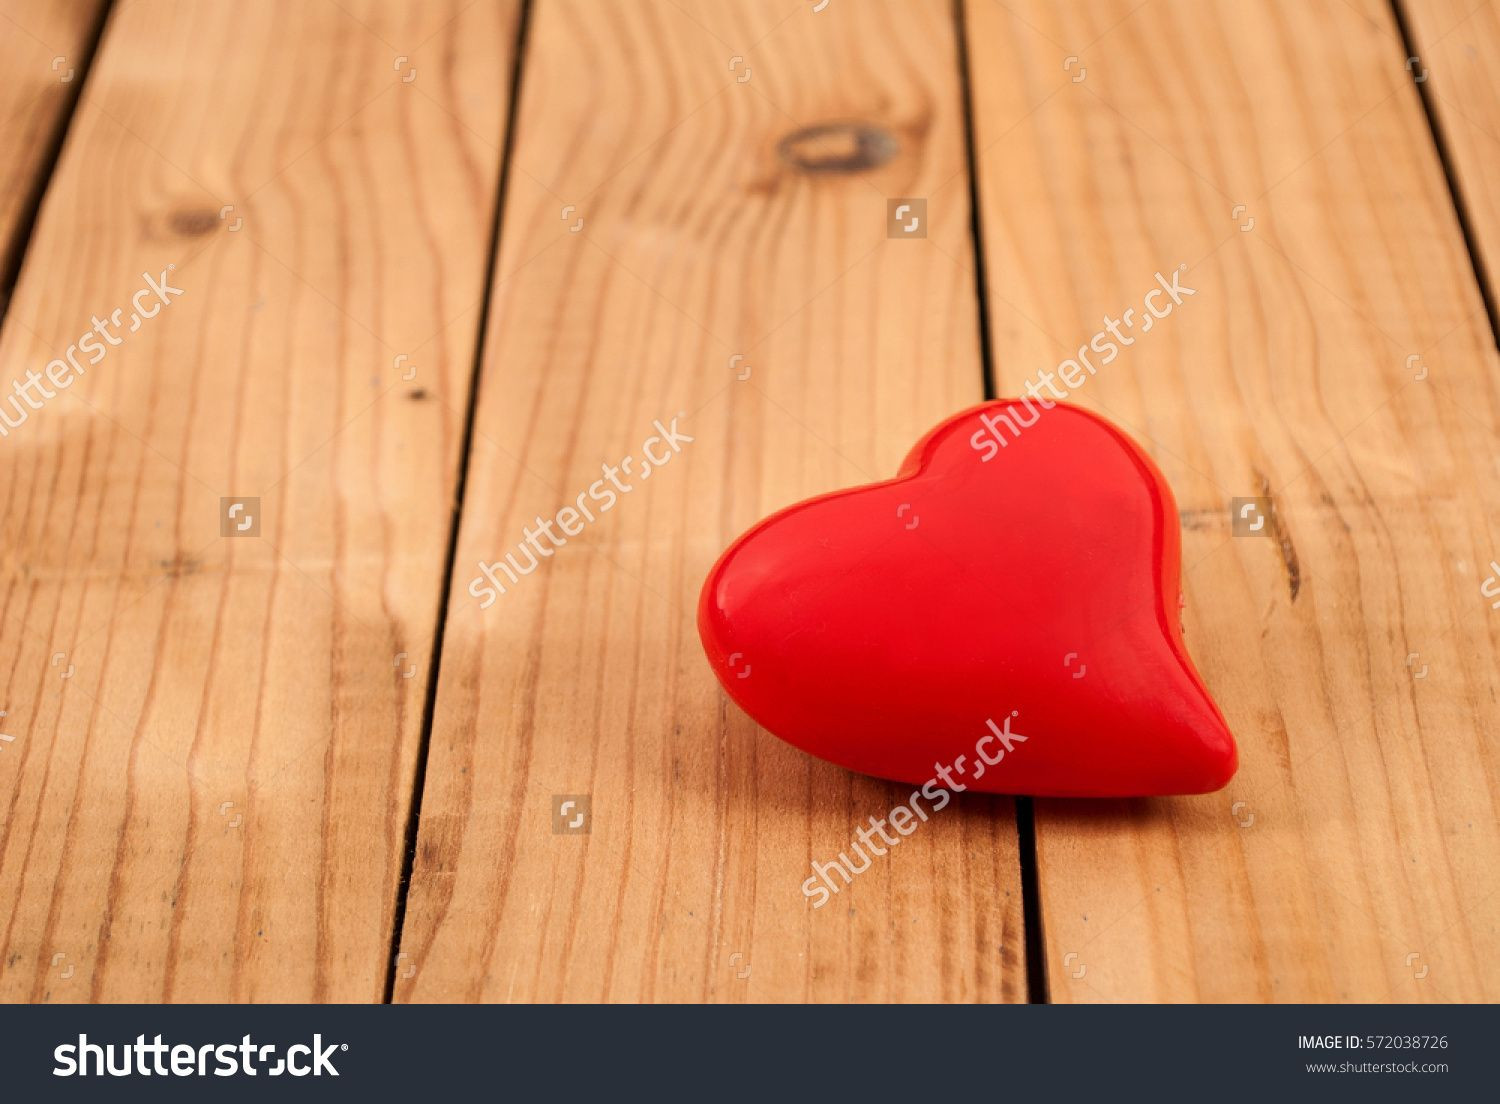 wholesale hardwood flooring for sale of red beauty heart od wooden background shutterstock photography regarding red beauty heart od wooden background buy this stock photo on shutterstock find other images